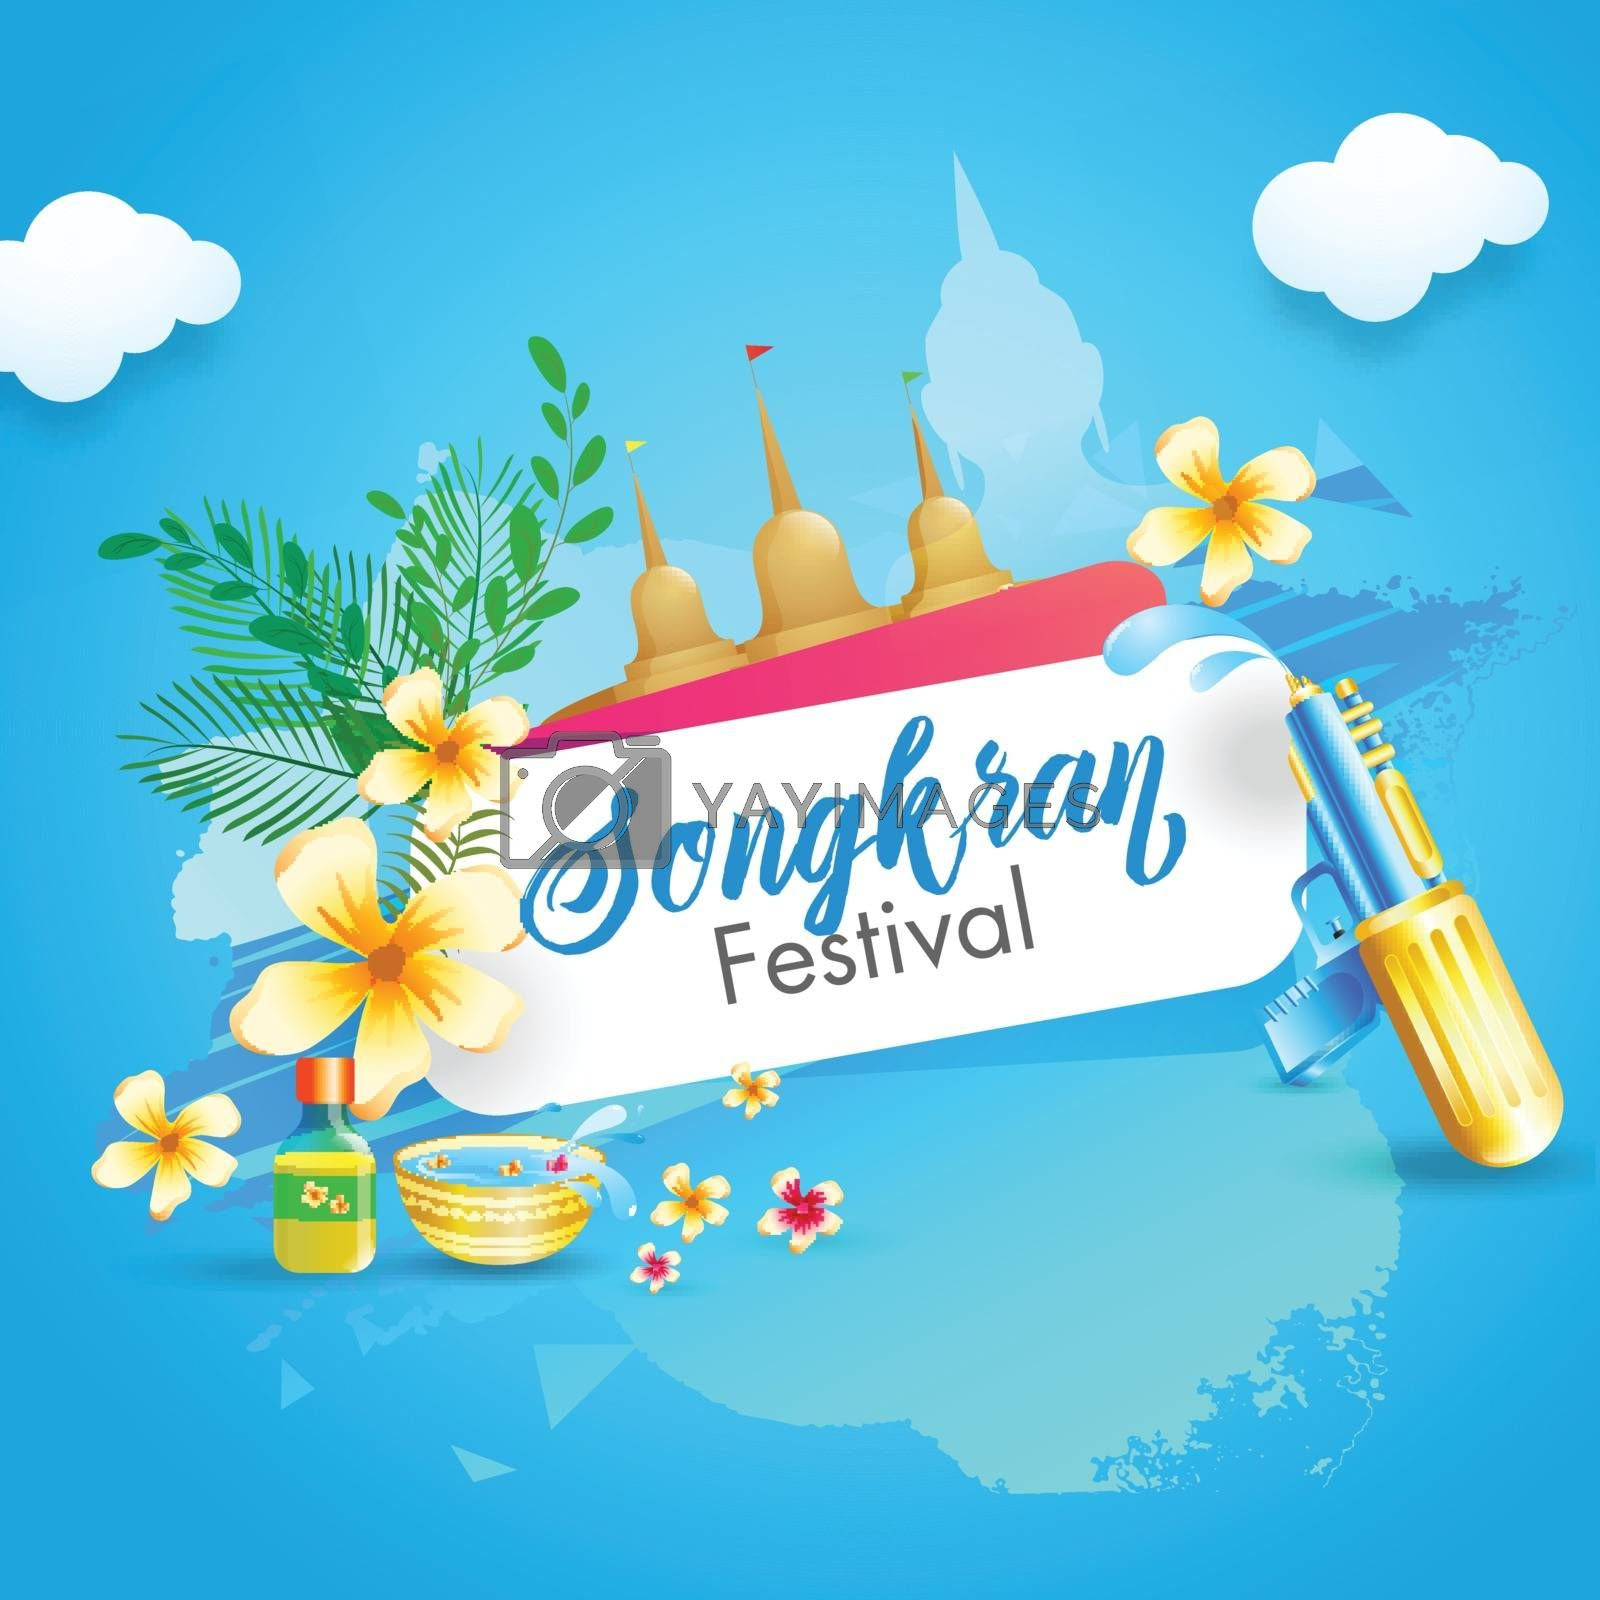 Royalty free image of Water Festival of Songkran poster or flyer design with illustrat by aispl